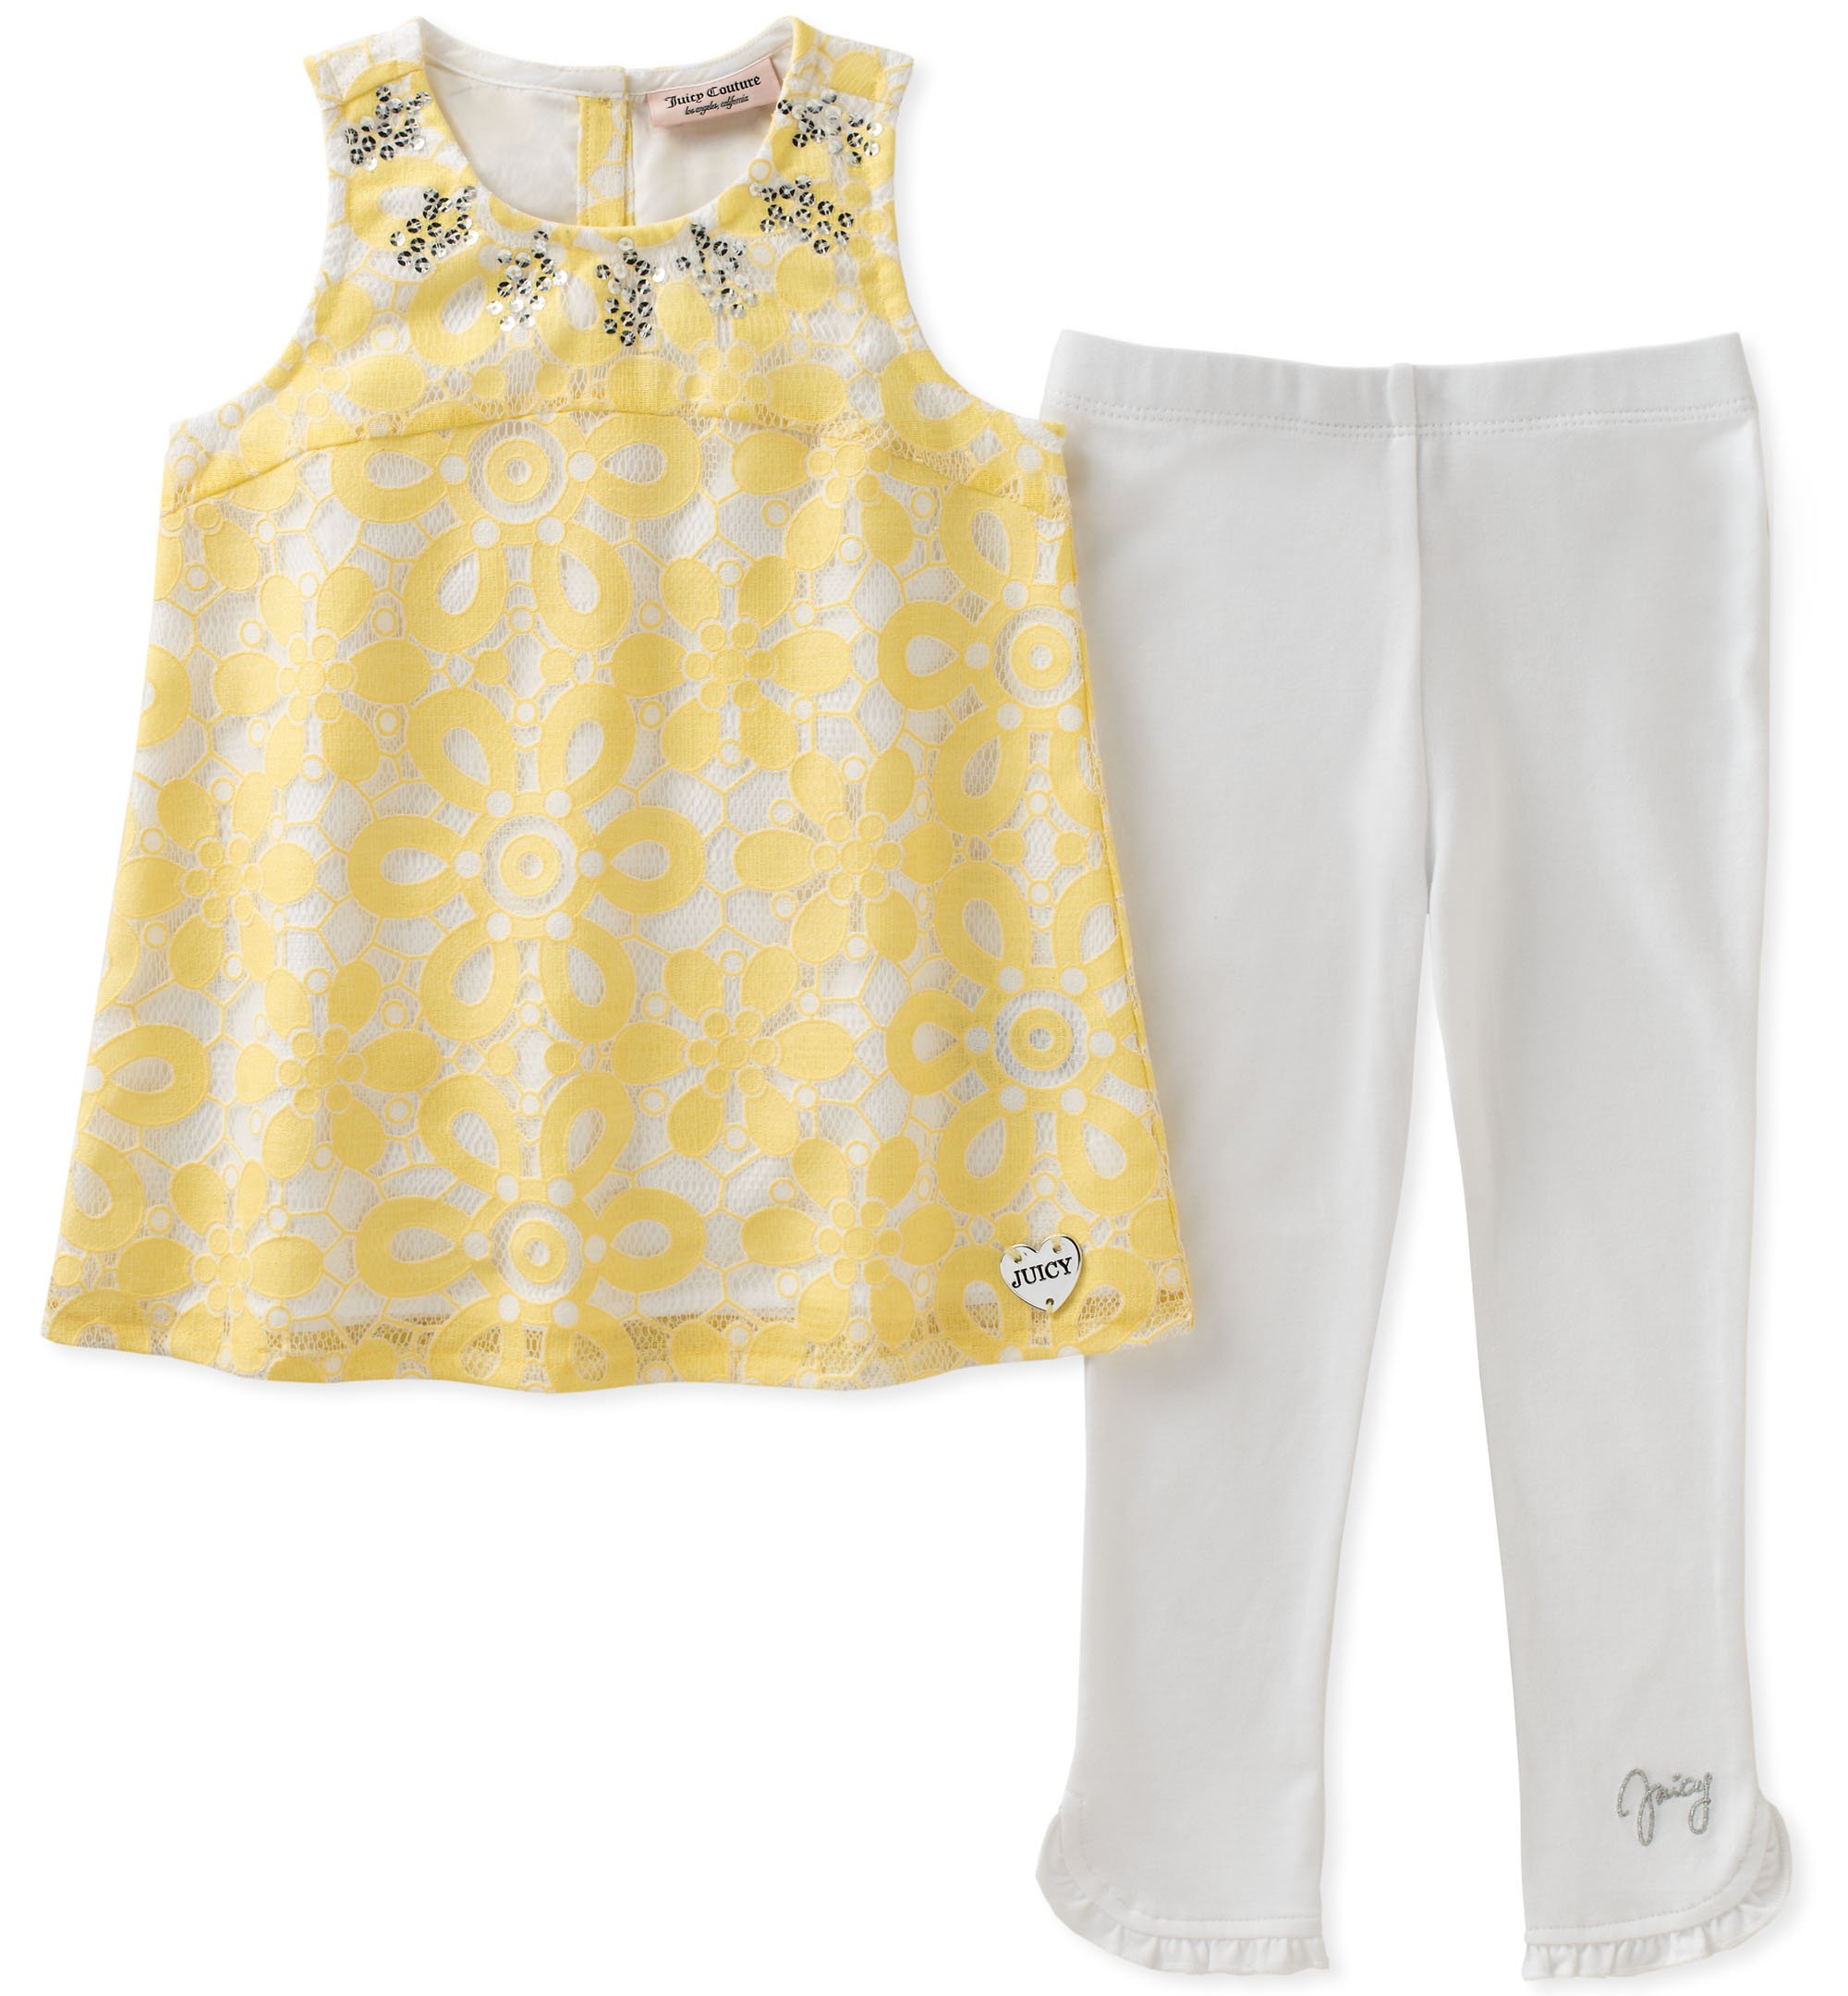 Juicy Couture Girls' Little 2 Pieces Tunic Set, Yellow/White 4